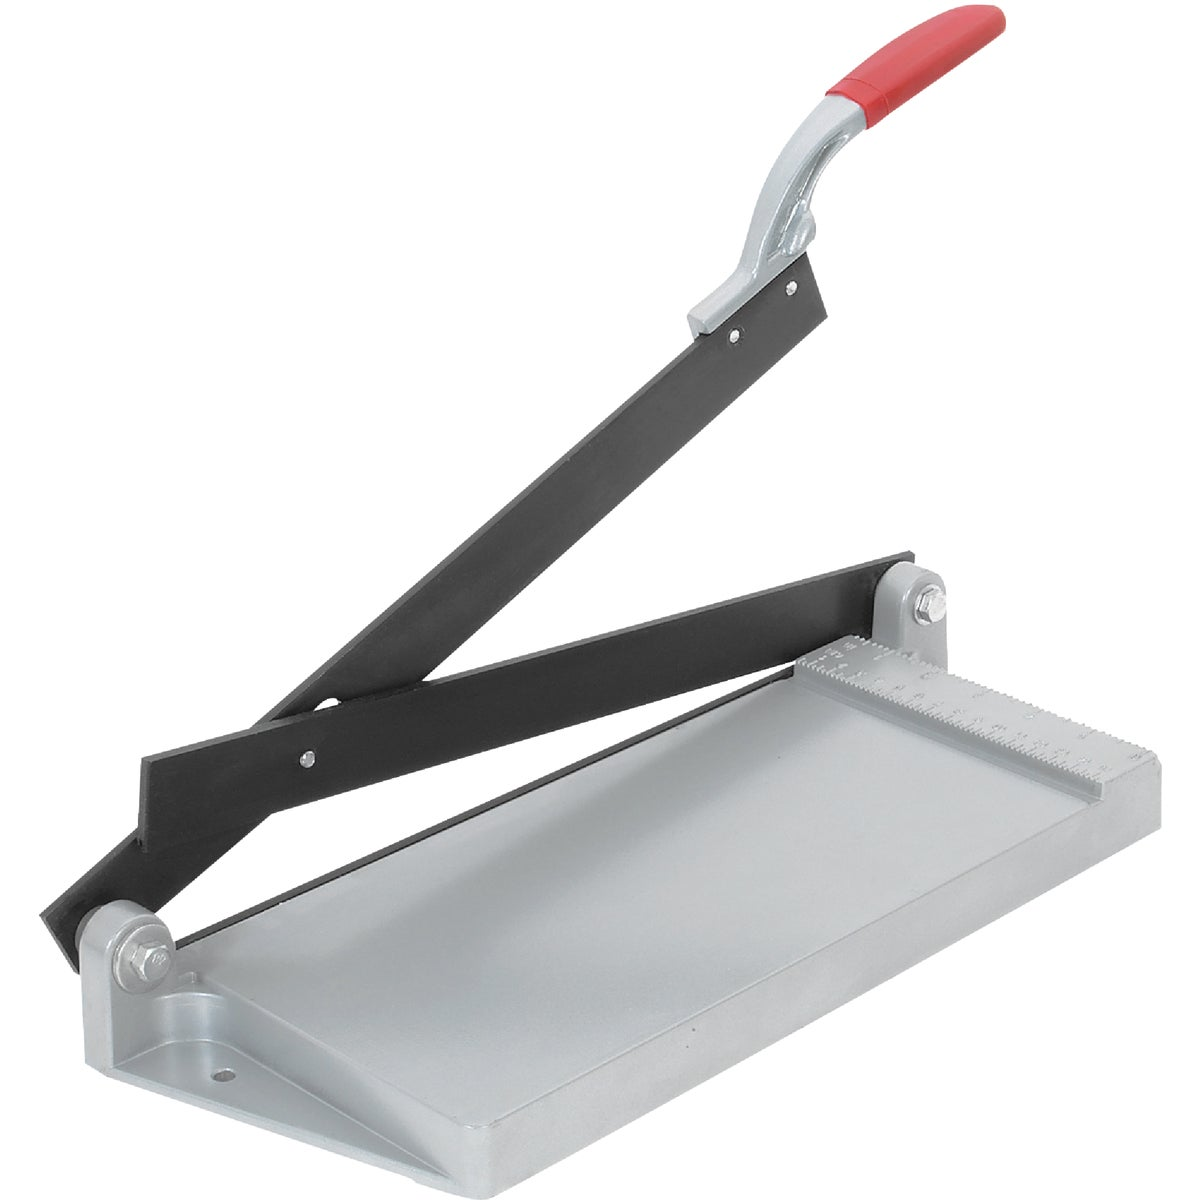 VINYL TILE CUTTER - 30002 by Qep Co Inc Roberts